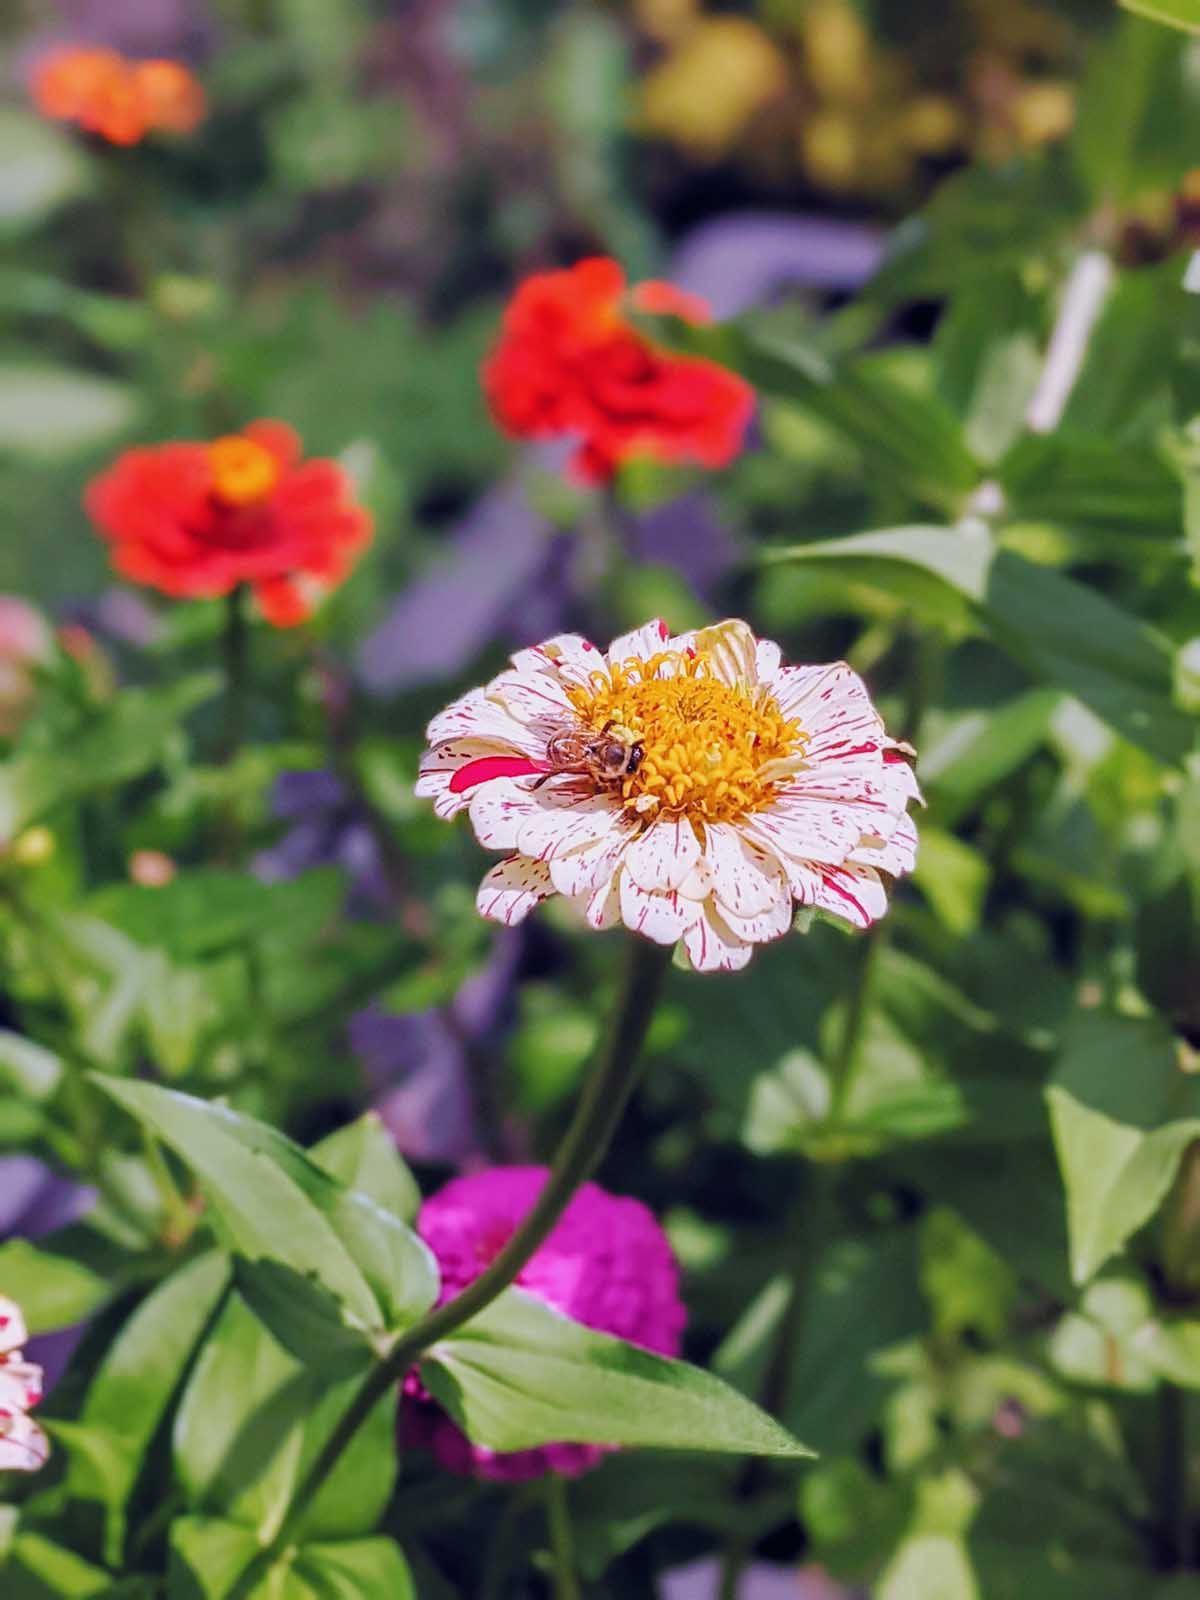 Pollinator friendly zinnias are great in the vegetable garden! Here's a bee on a peppermint stick zinnia.